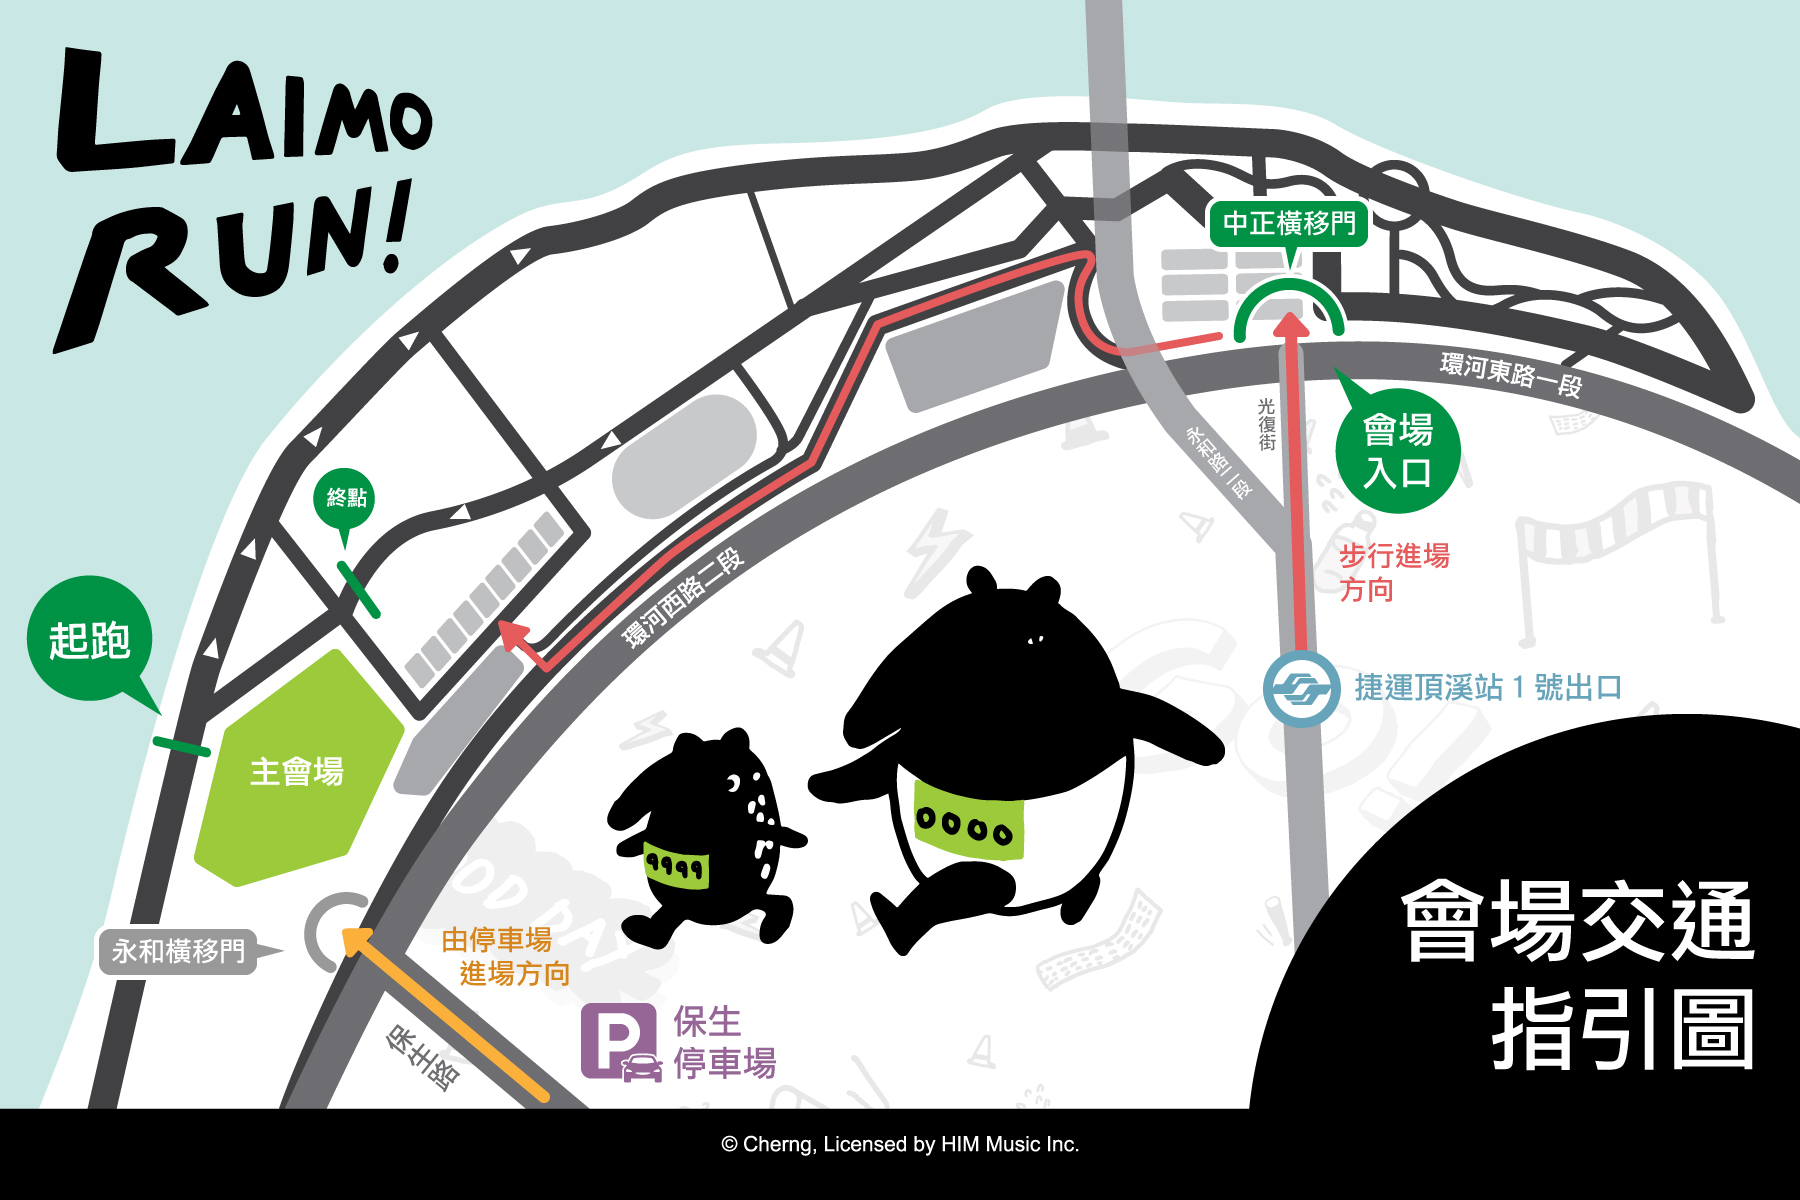 Laimo_run_venue_map_website